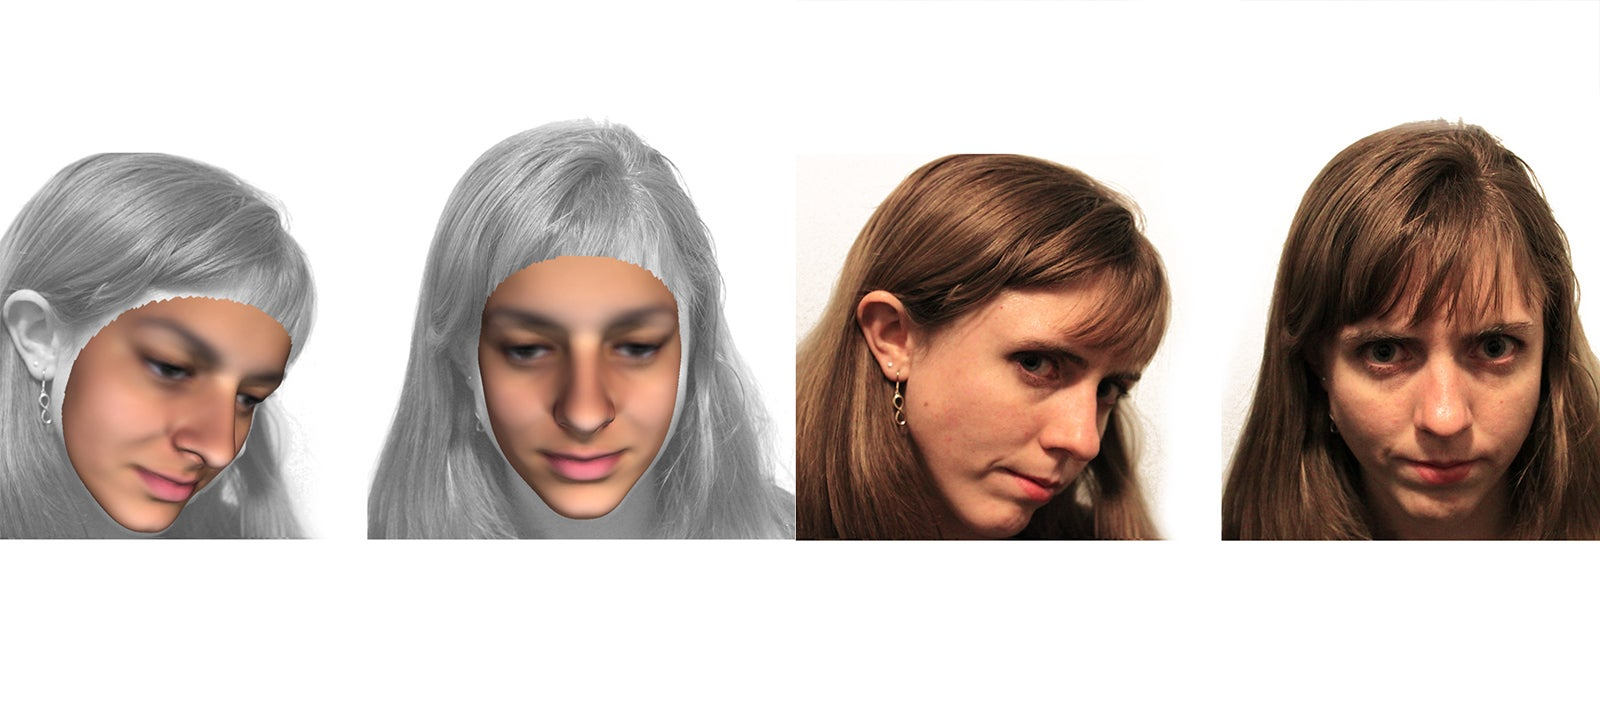 These Eerily Accurate Mugshots Were Created From DNA Alone